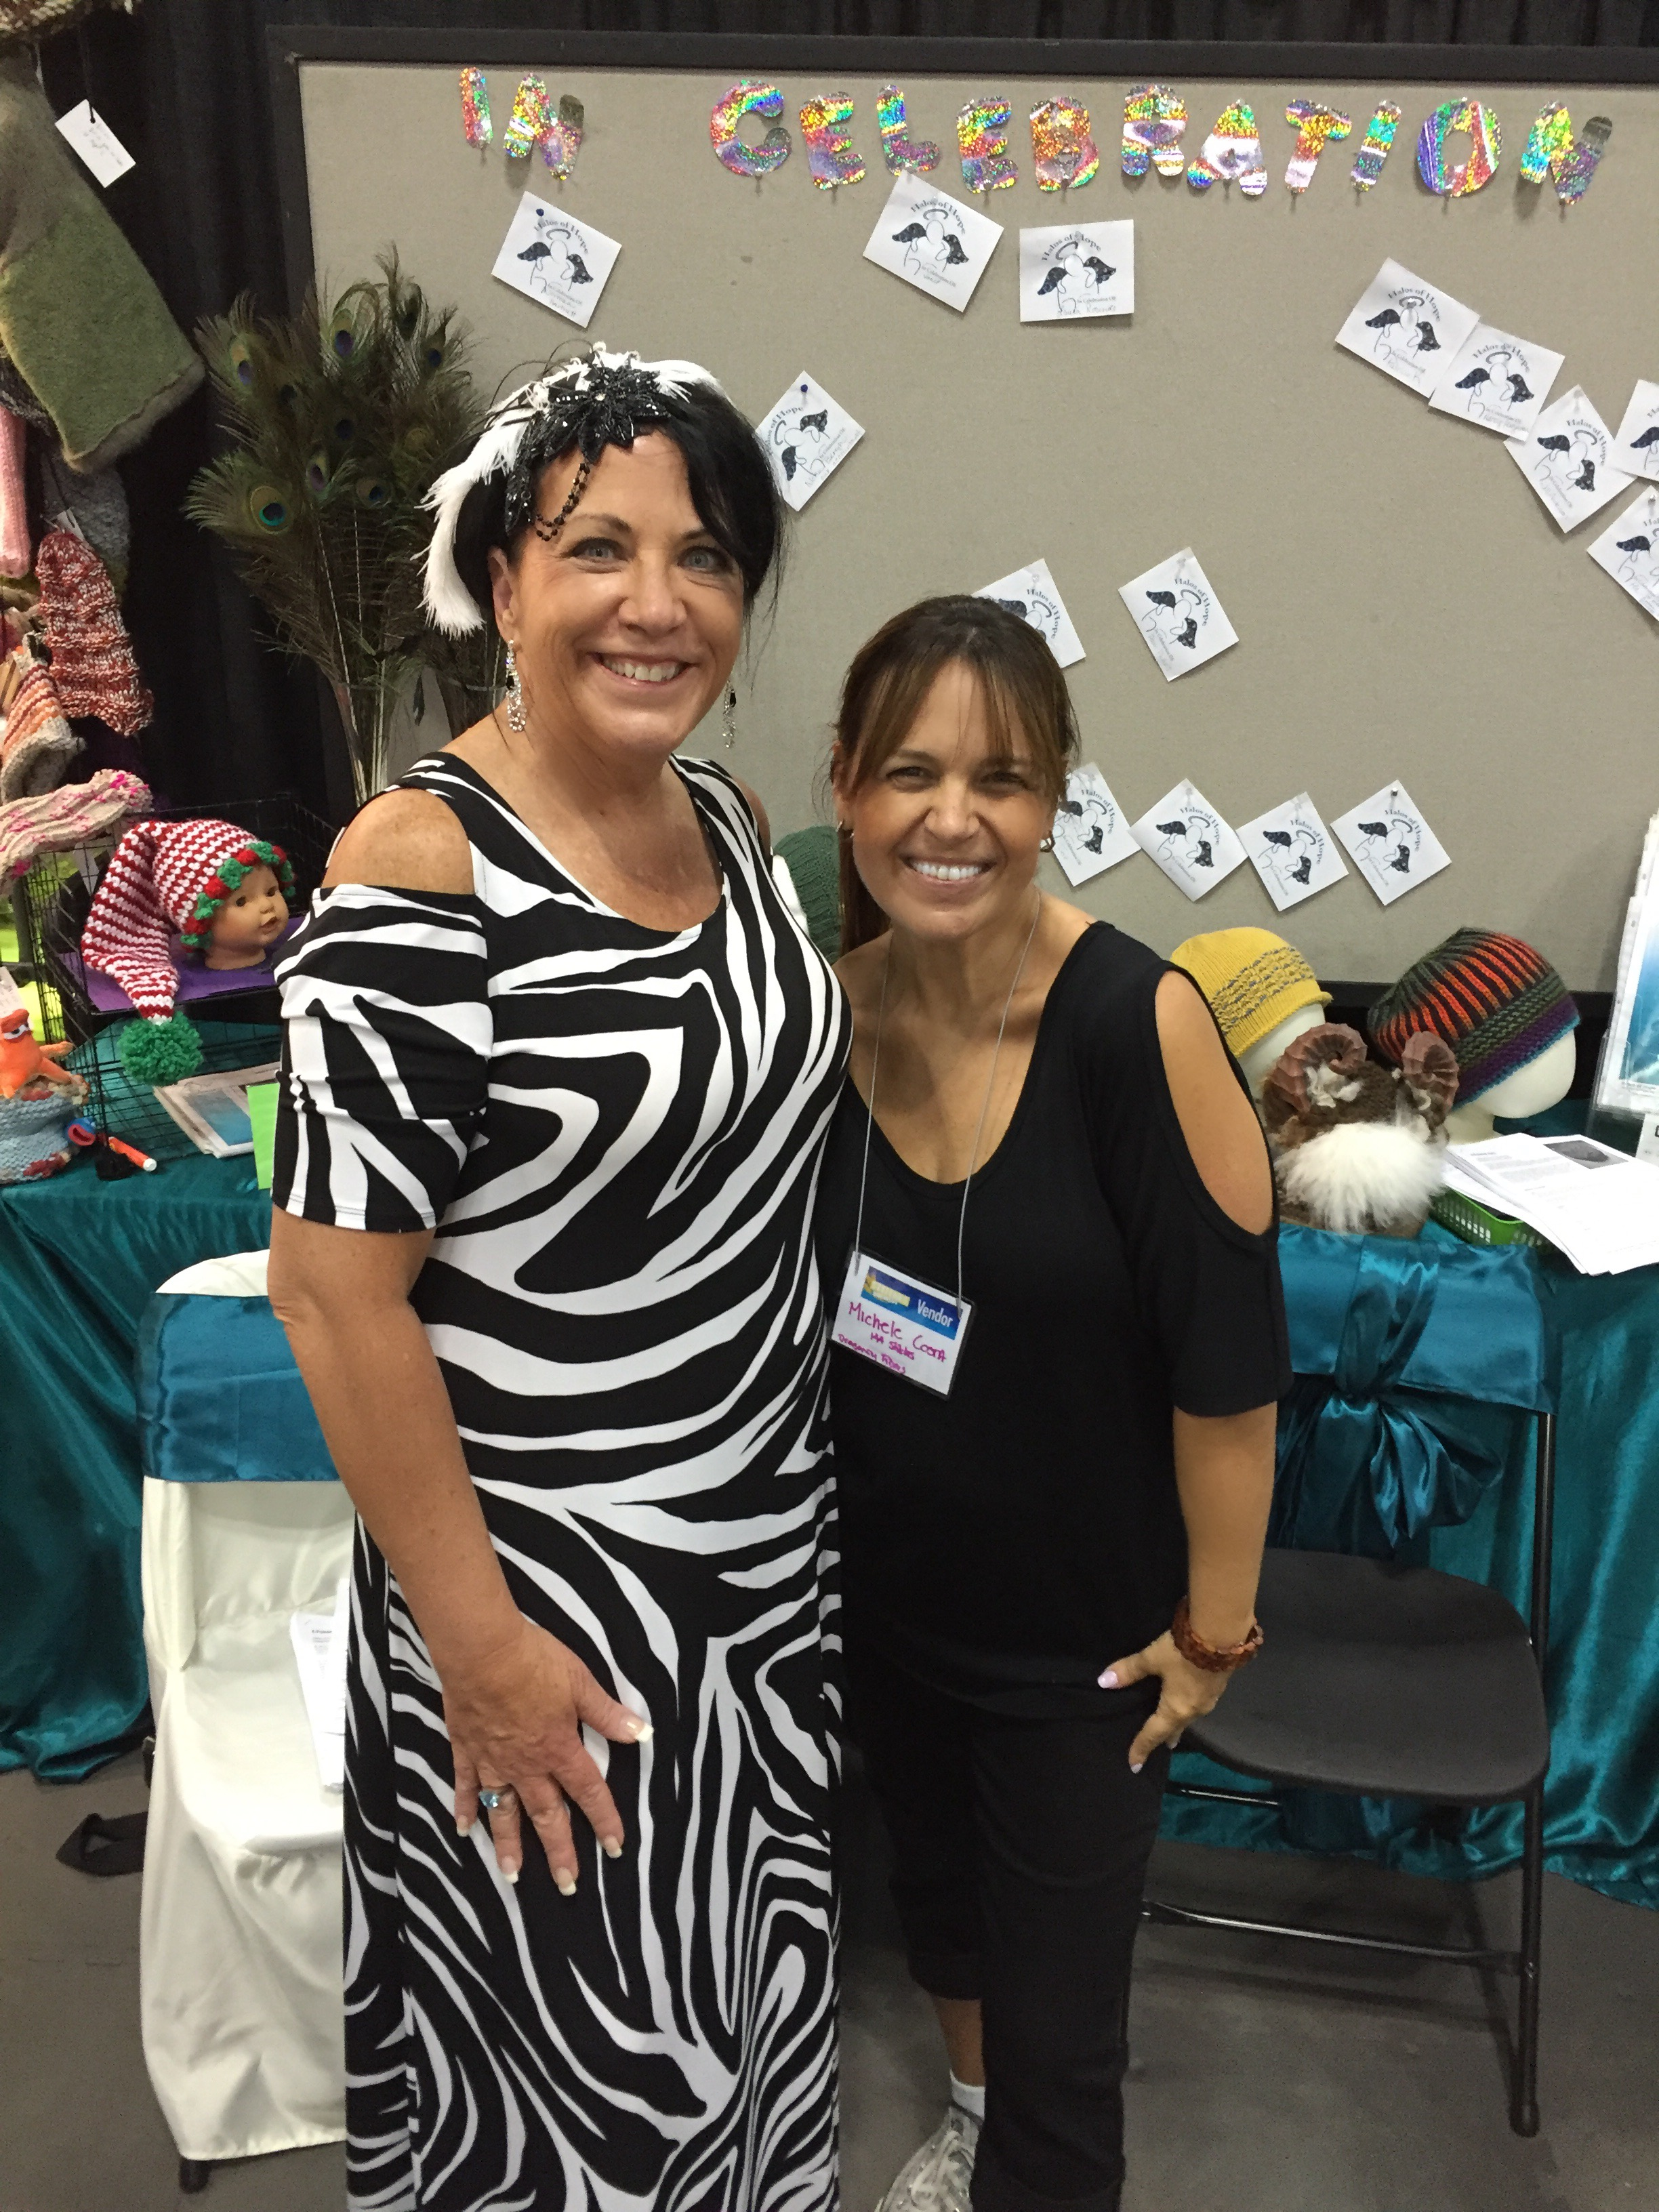 with Pam H at the Halos of Hope Booth at Stitches Midwest